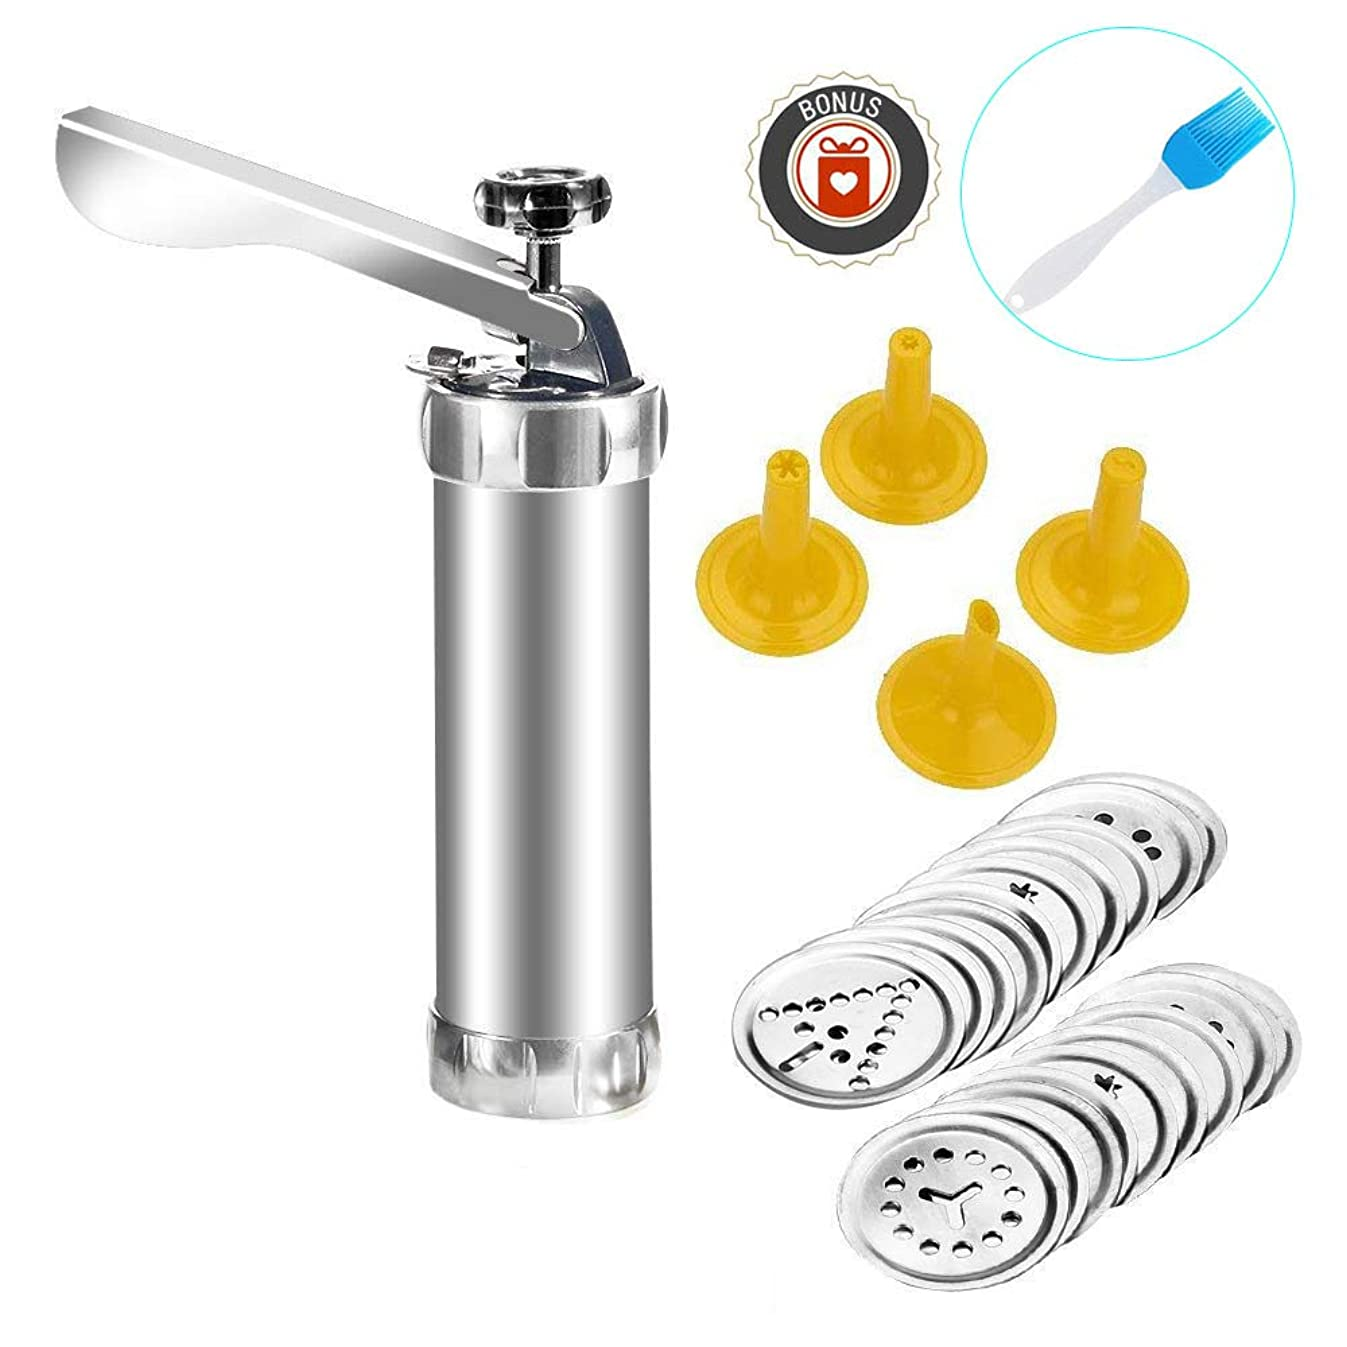 Cookie Press Gun Kit Multifunctional DIY Biscuit Maker Decorating Set for Christmas Birthday Baking- Includes 20 Molds and 4 Nozzles